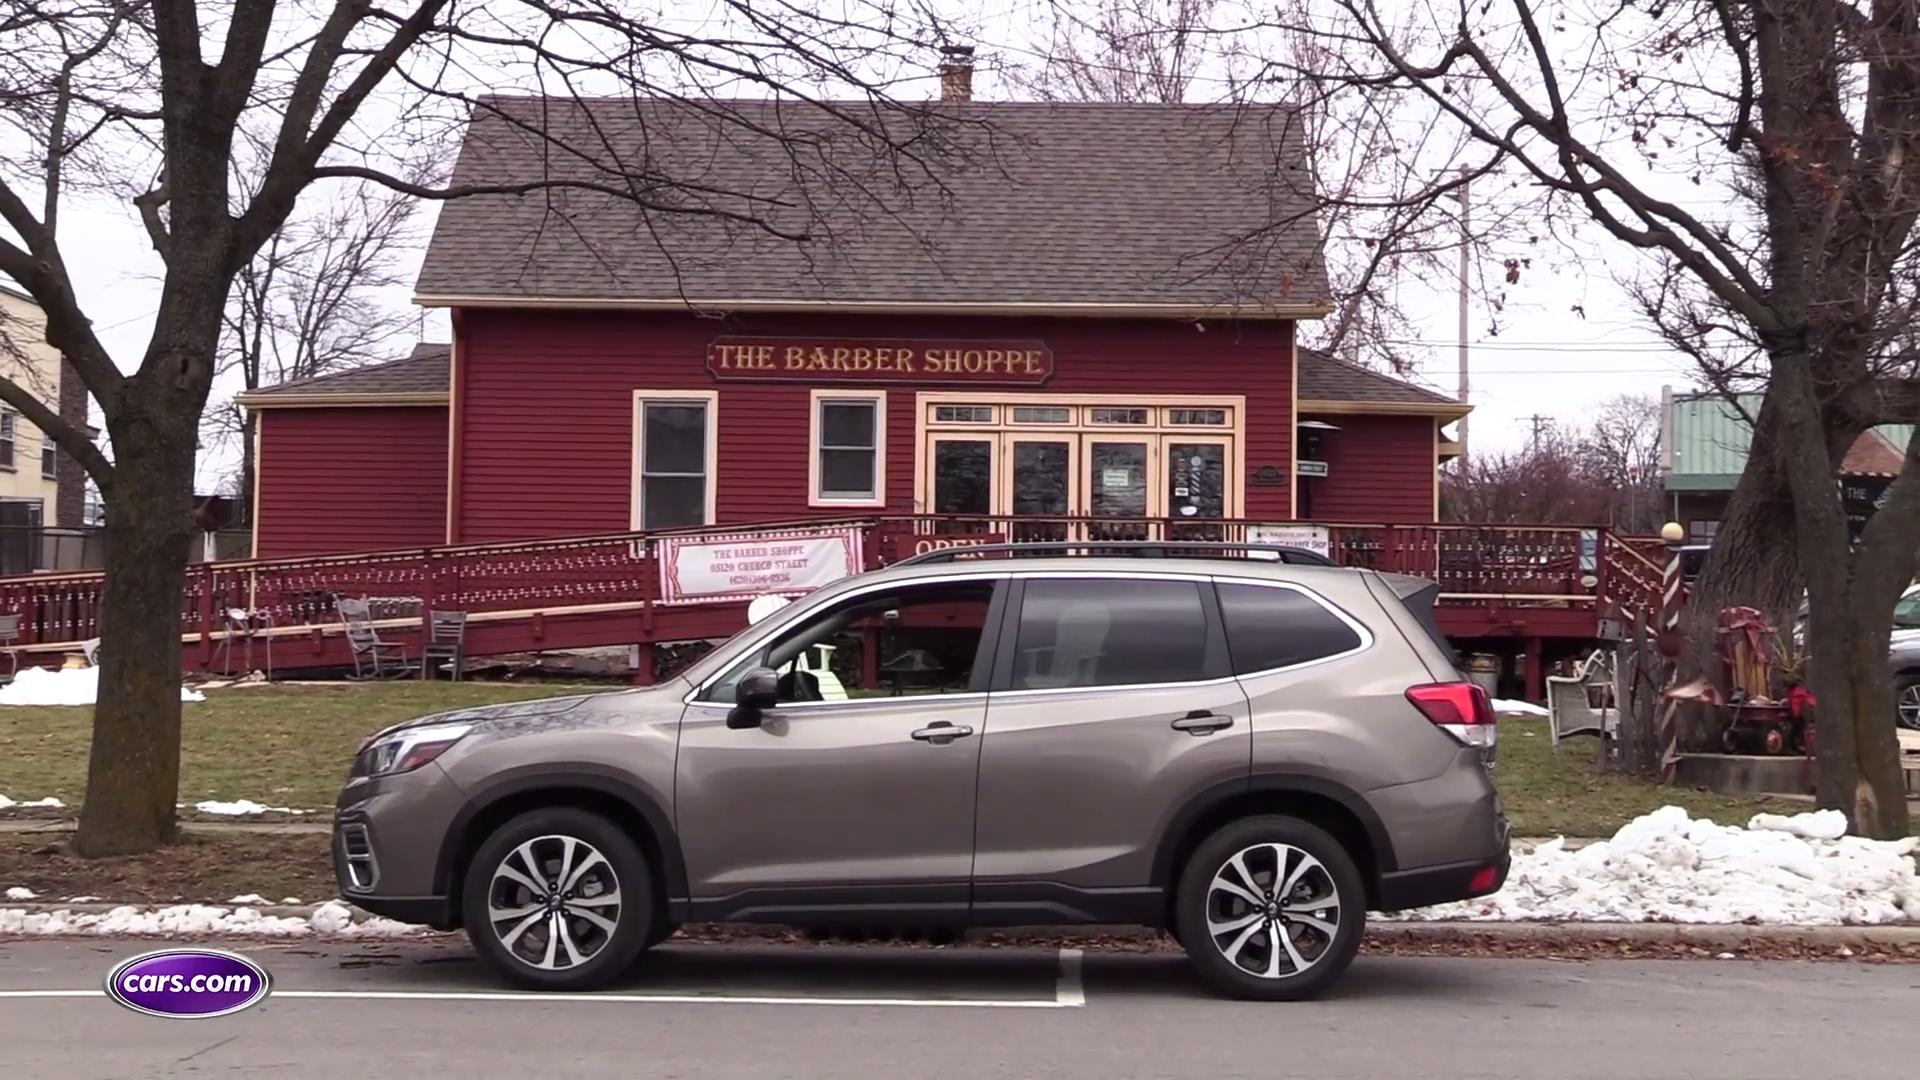 2019 Subaru Forester - For every turn, there's cars com